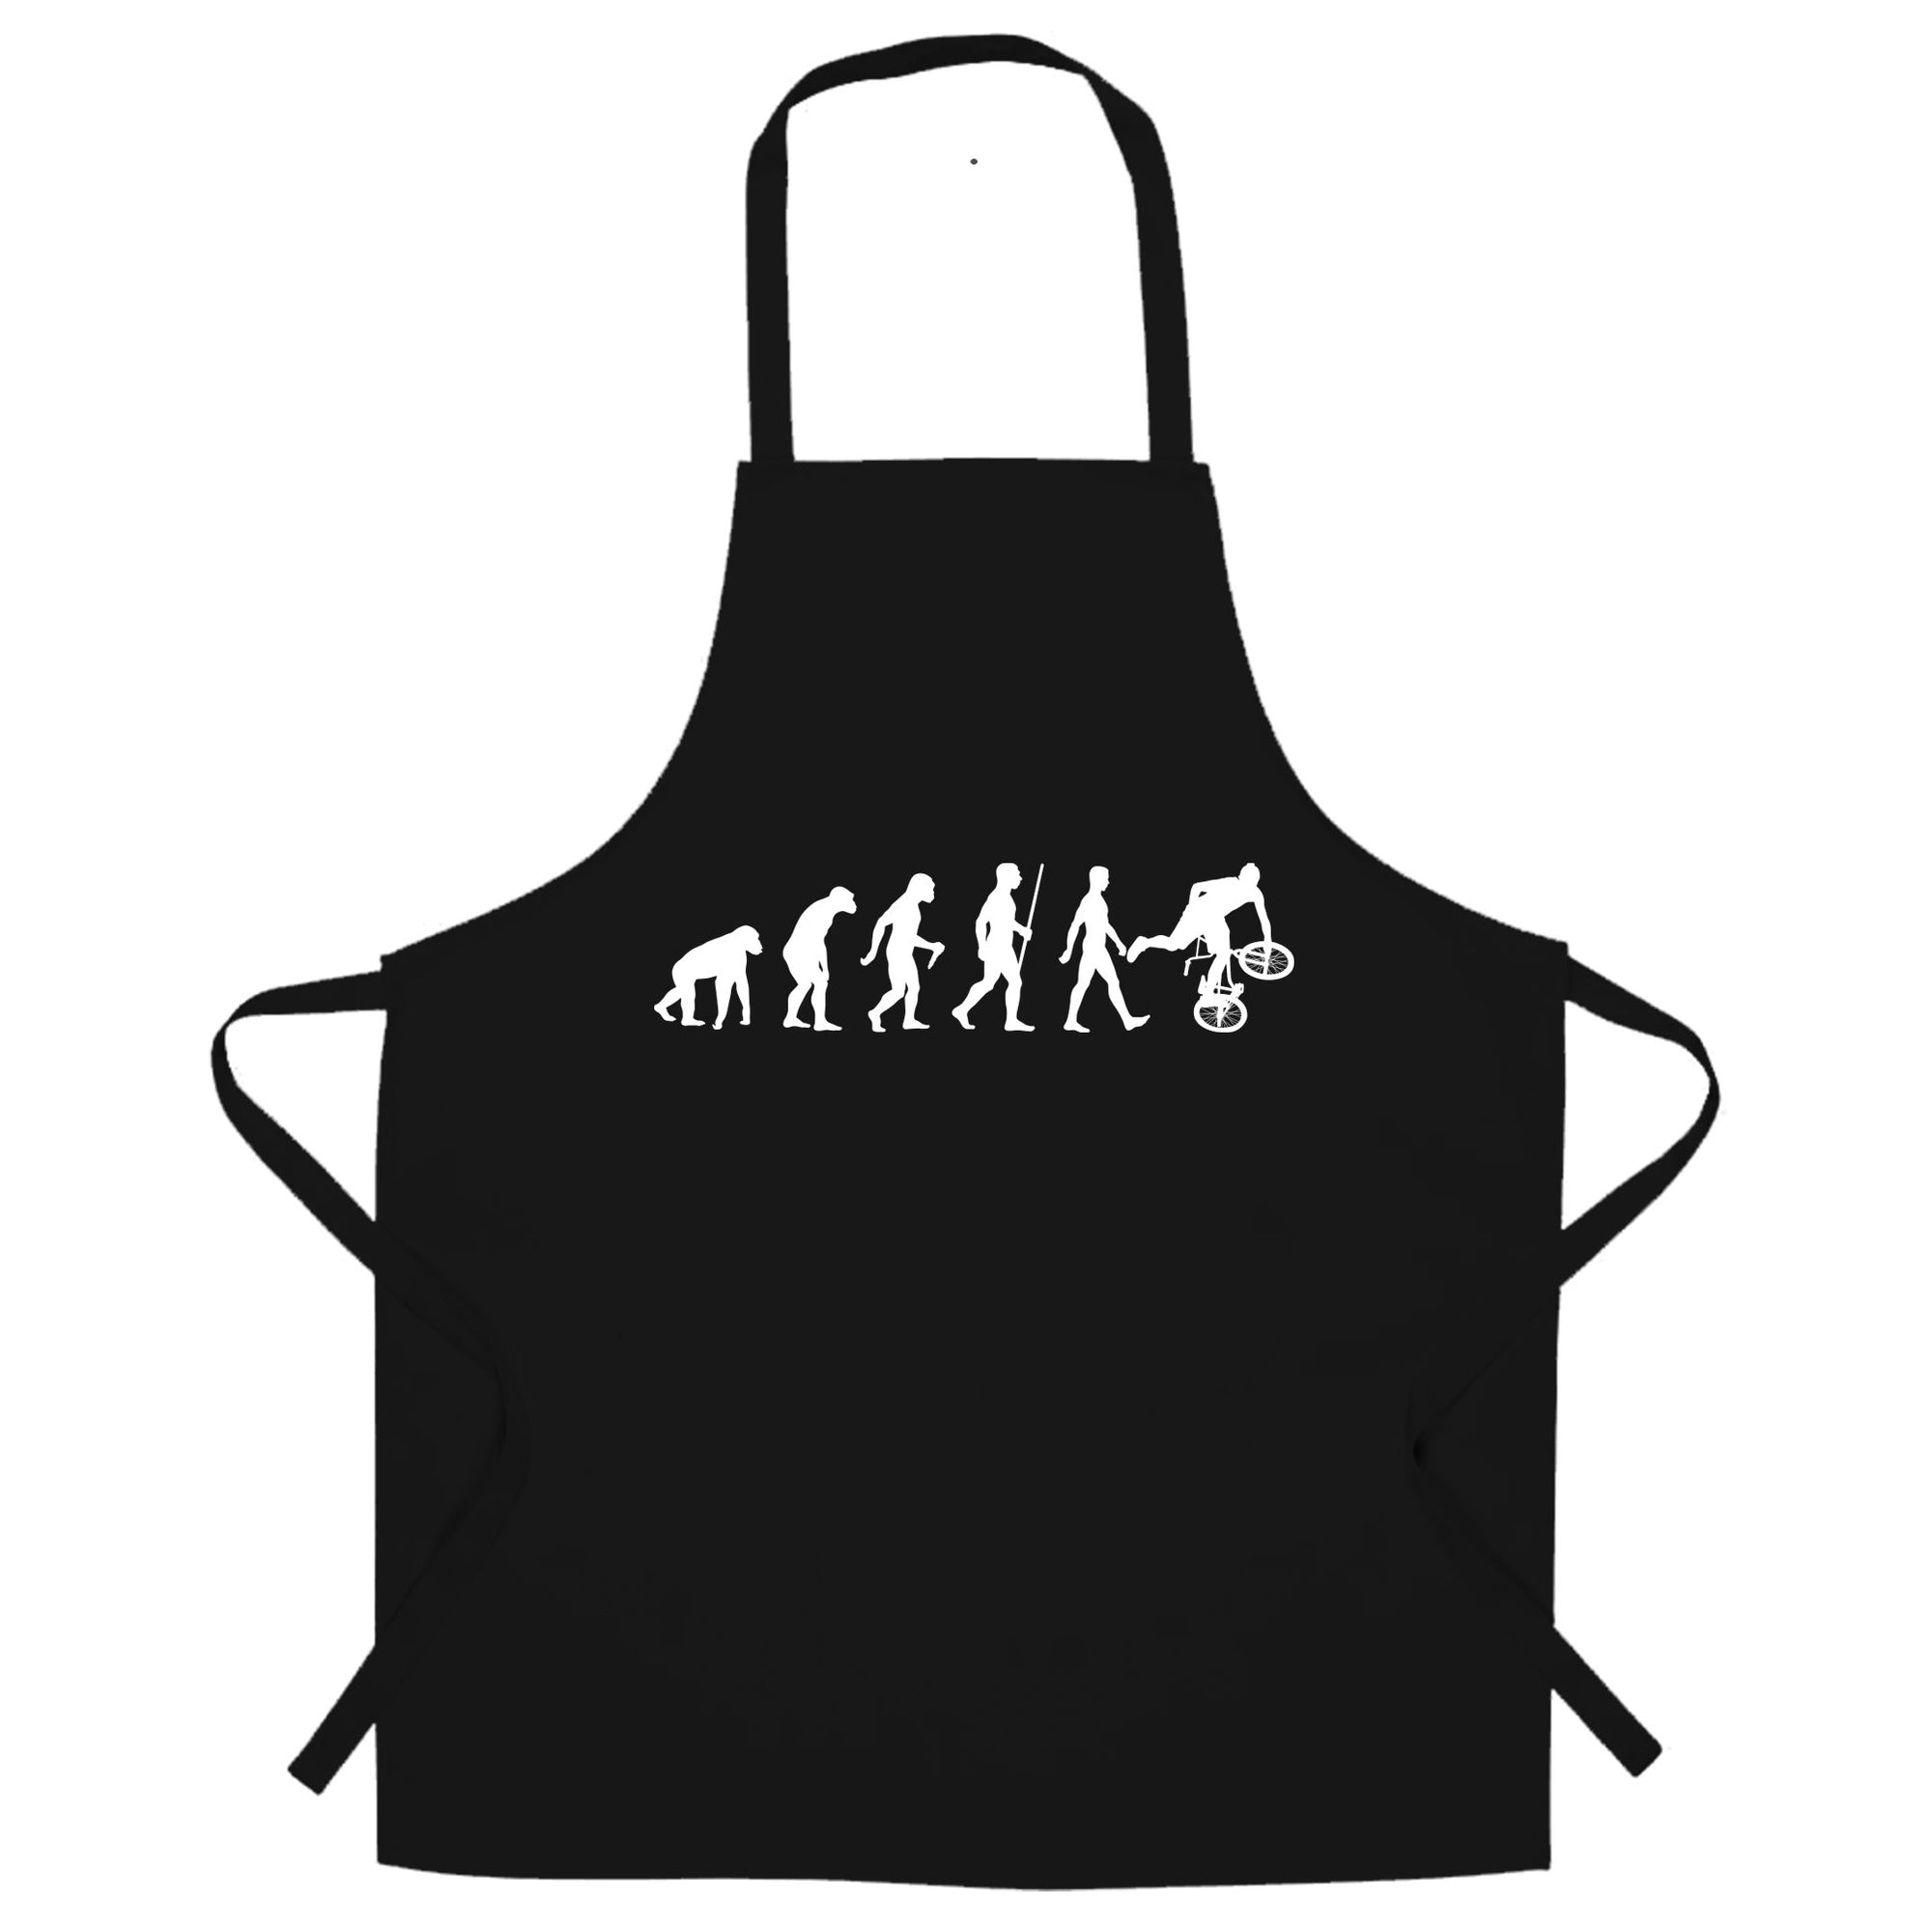 Exrtreme Sports Chef's Apron Evolution Of BMX Bike Dirt